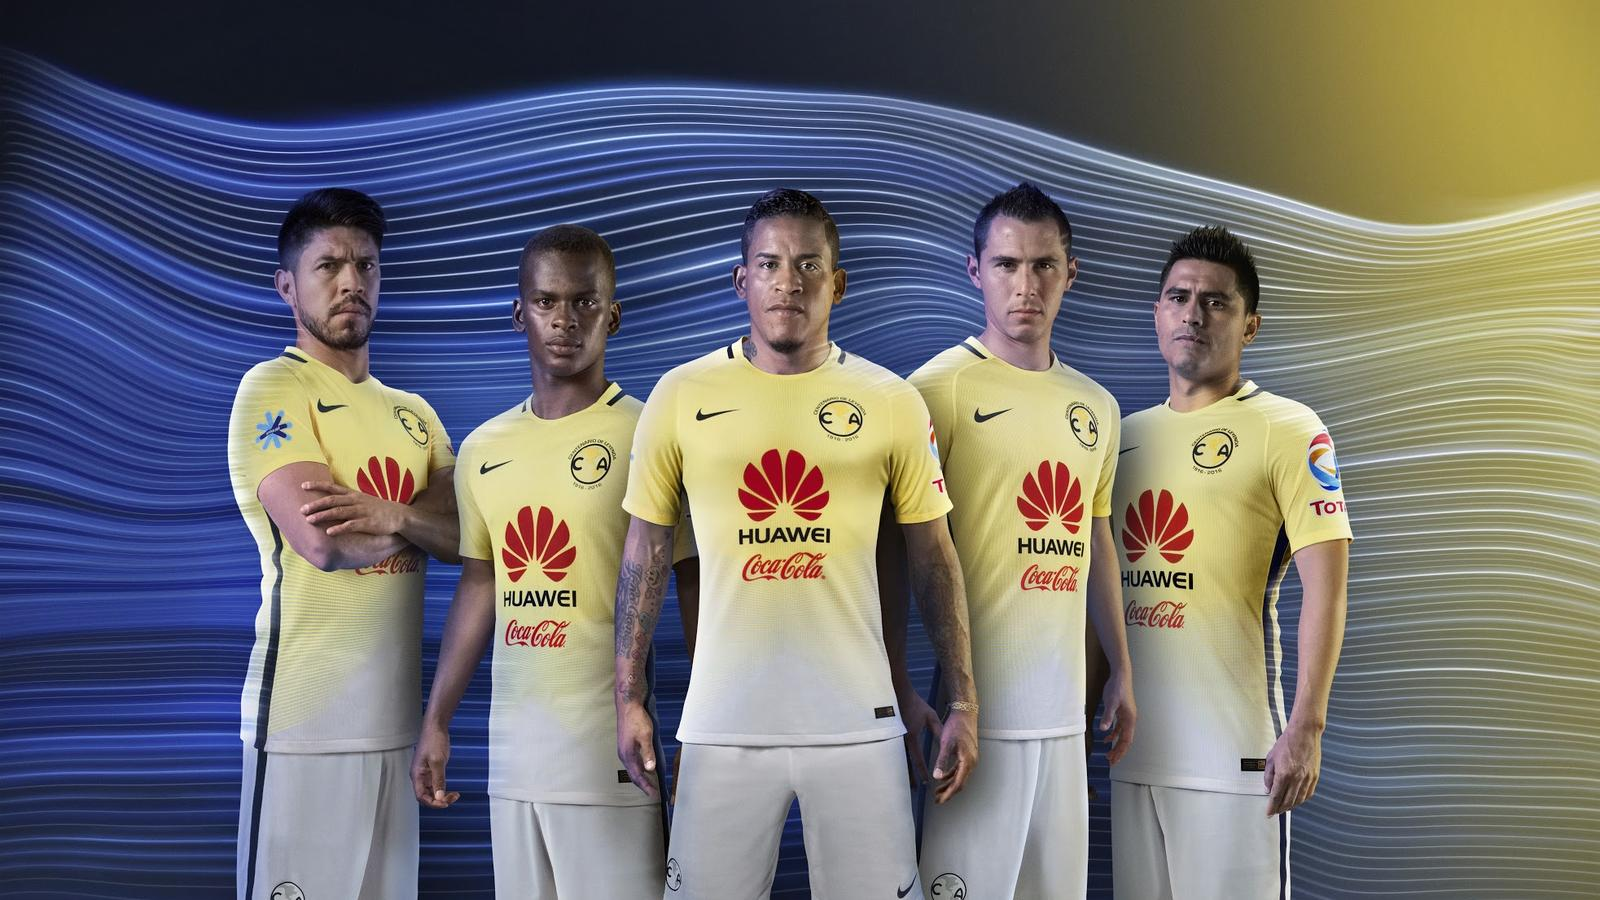 Nike present Mexico s Club America 2016 17 home kit    Arunava about     Nike present Mexico s Club America 2016 17 home kit    Arunava about  Football